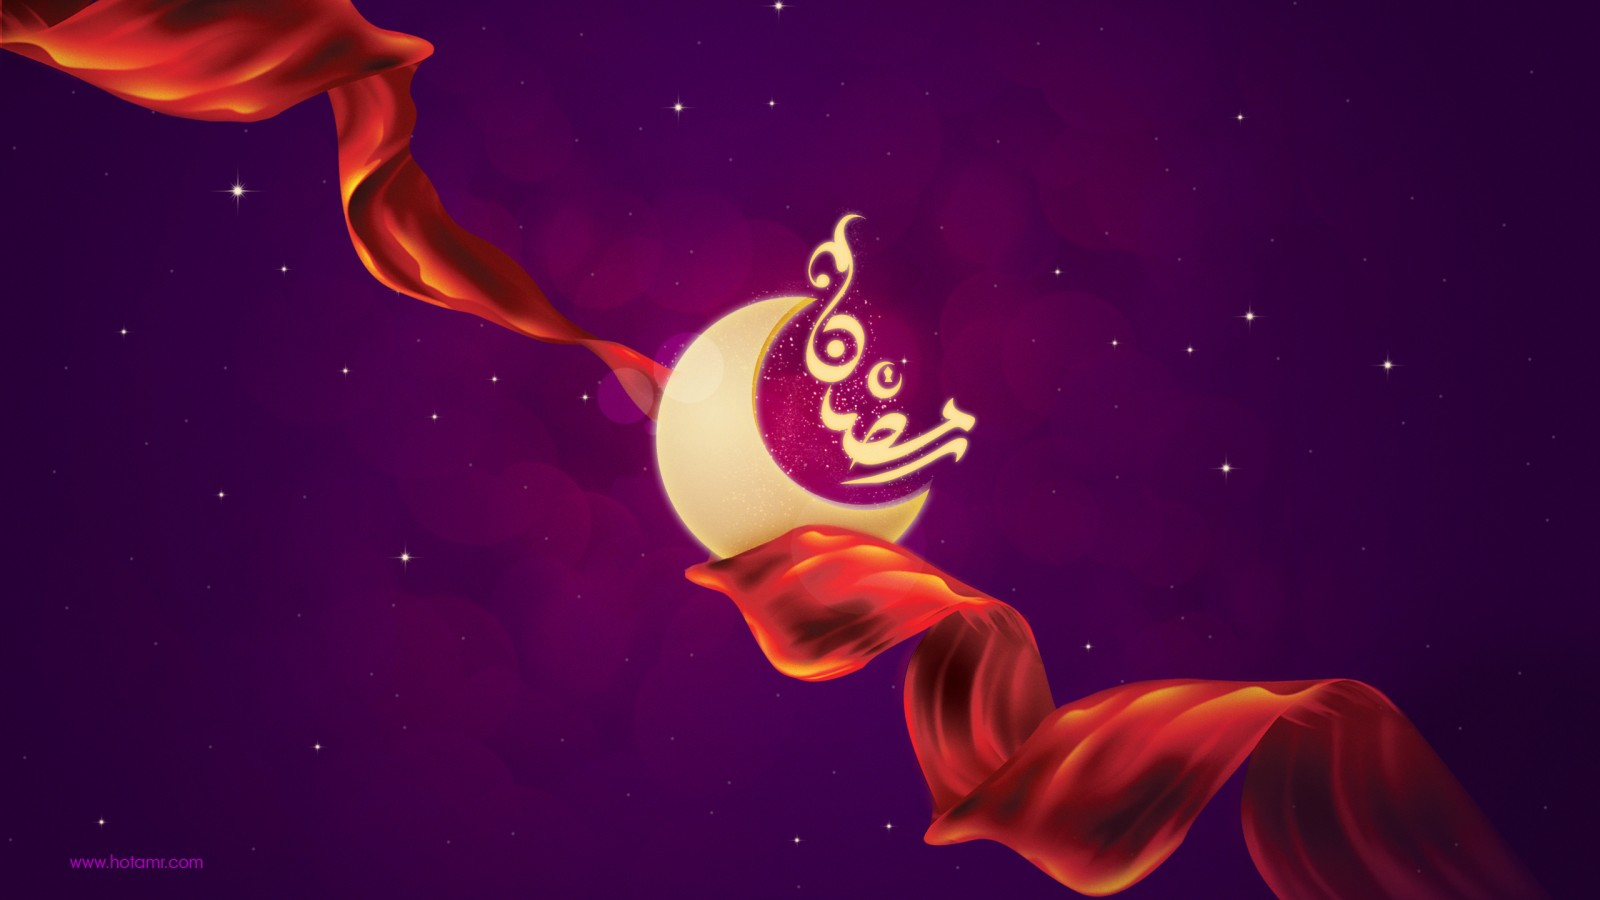 Mardi Gras Wallpaper For Iphone Holy Ramzan Wallpapers Hd Wallpapers Id 13677